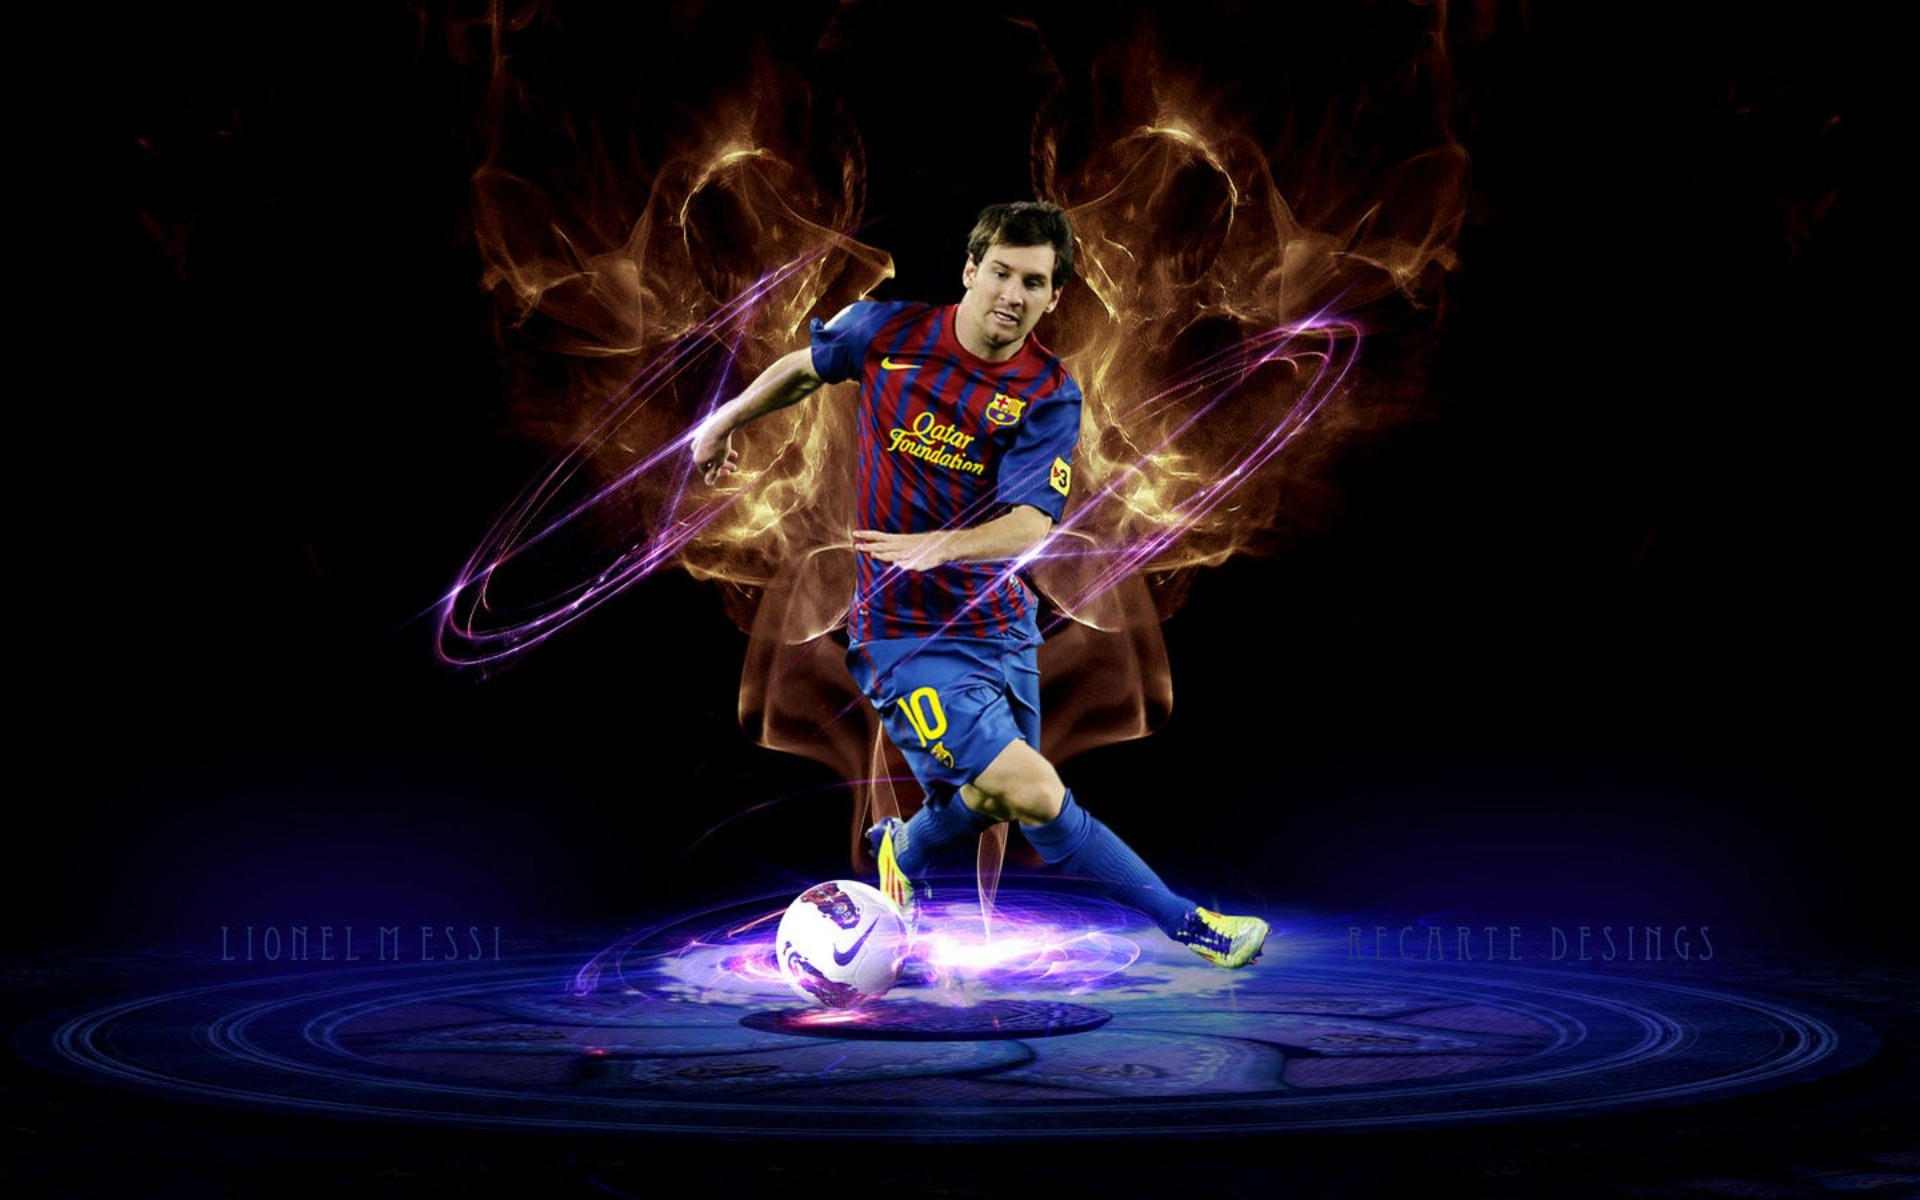 1920x1200 Messi, Soccer, Sports, Picture, Wallpaper, Download, Desktop Images, Best,  1920×1200 Wallpaper HD